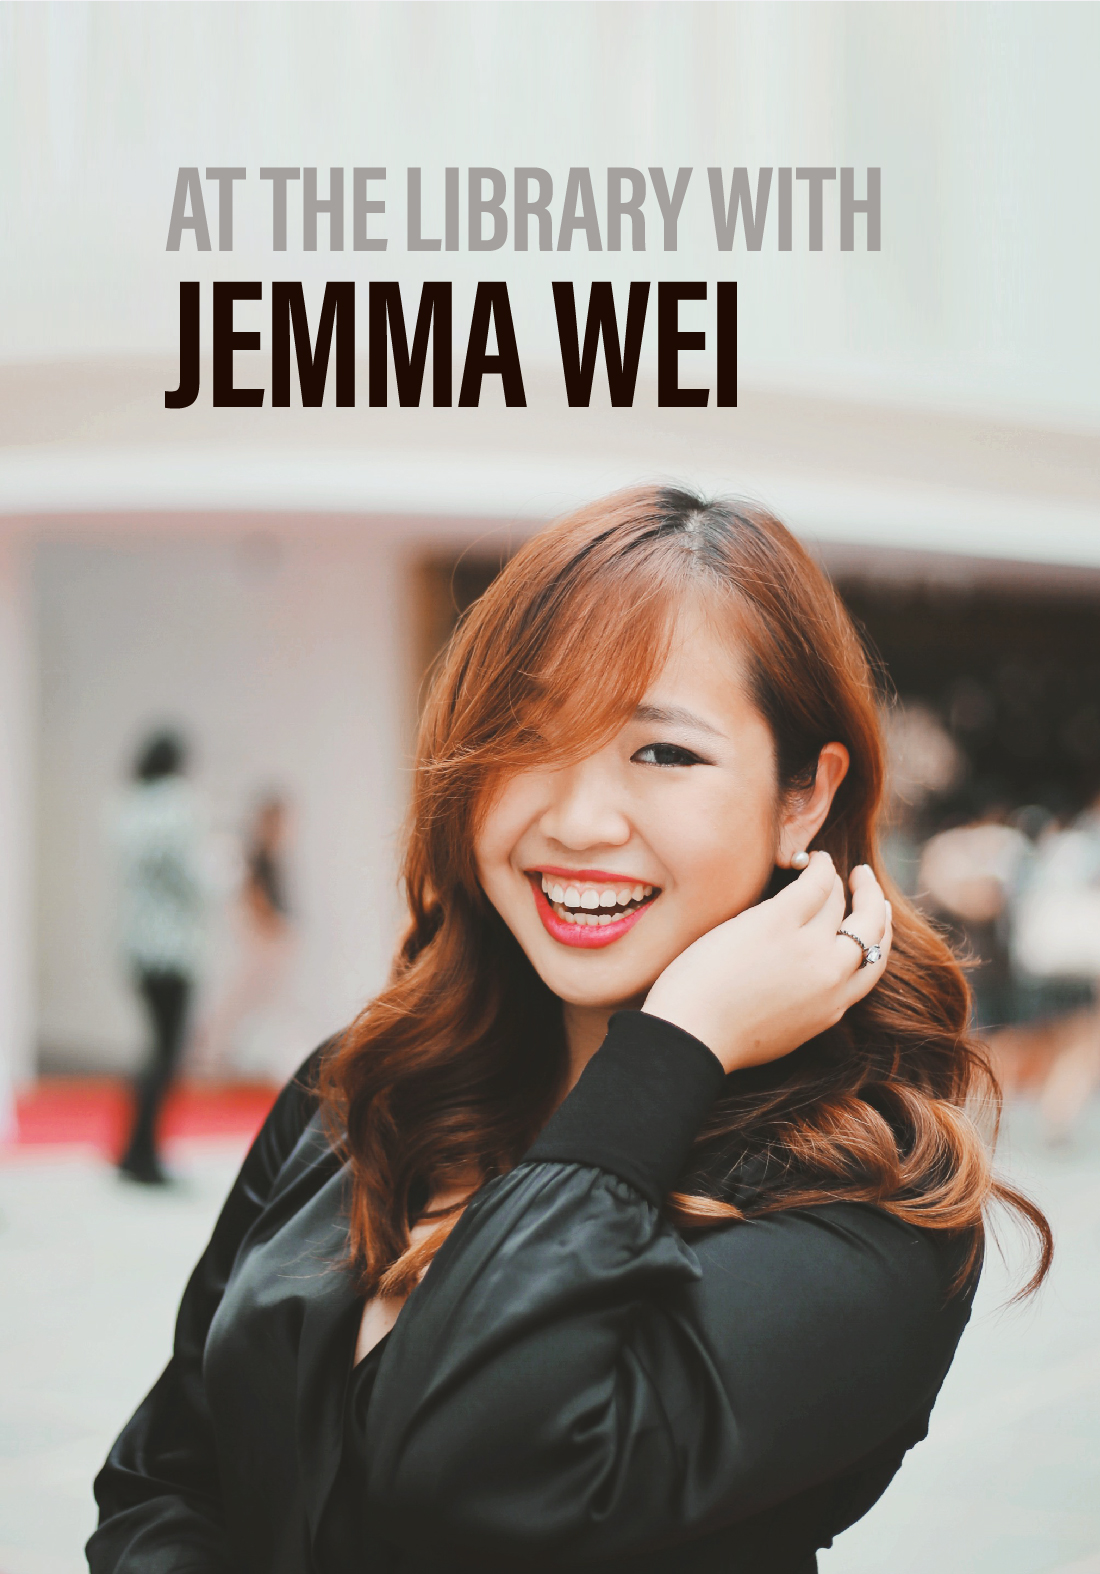 At the Library with Jemma Wei